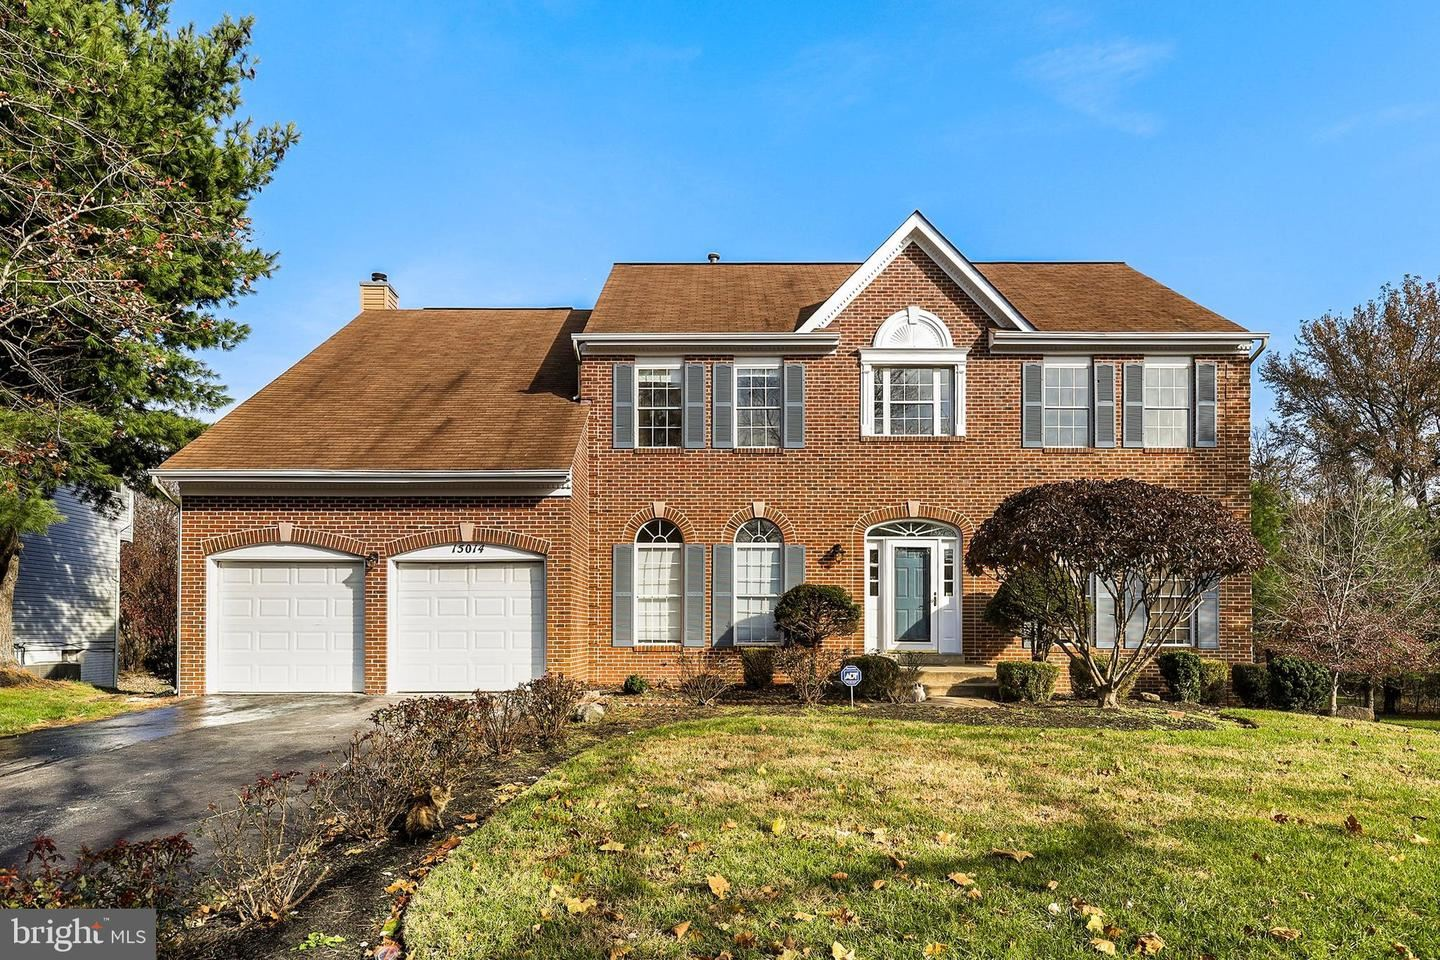 Photo for 15014 JERIMIAH LN, BOWIE, MD 20721 (MLS # MDPG551028)